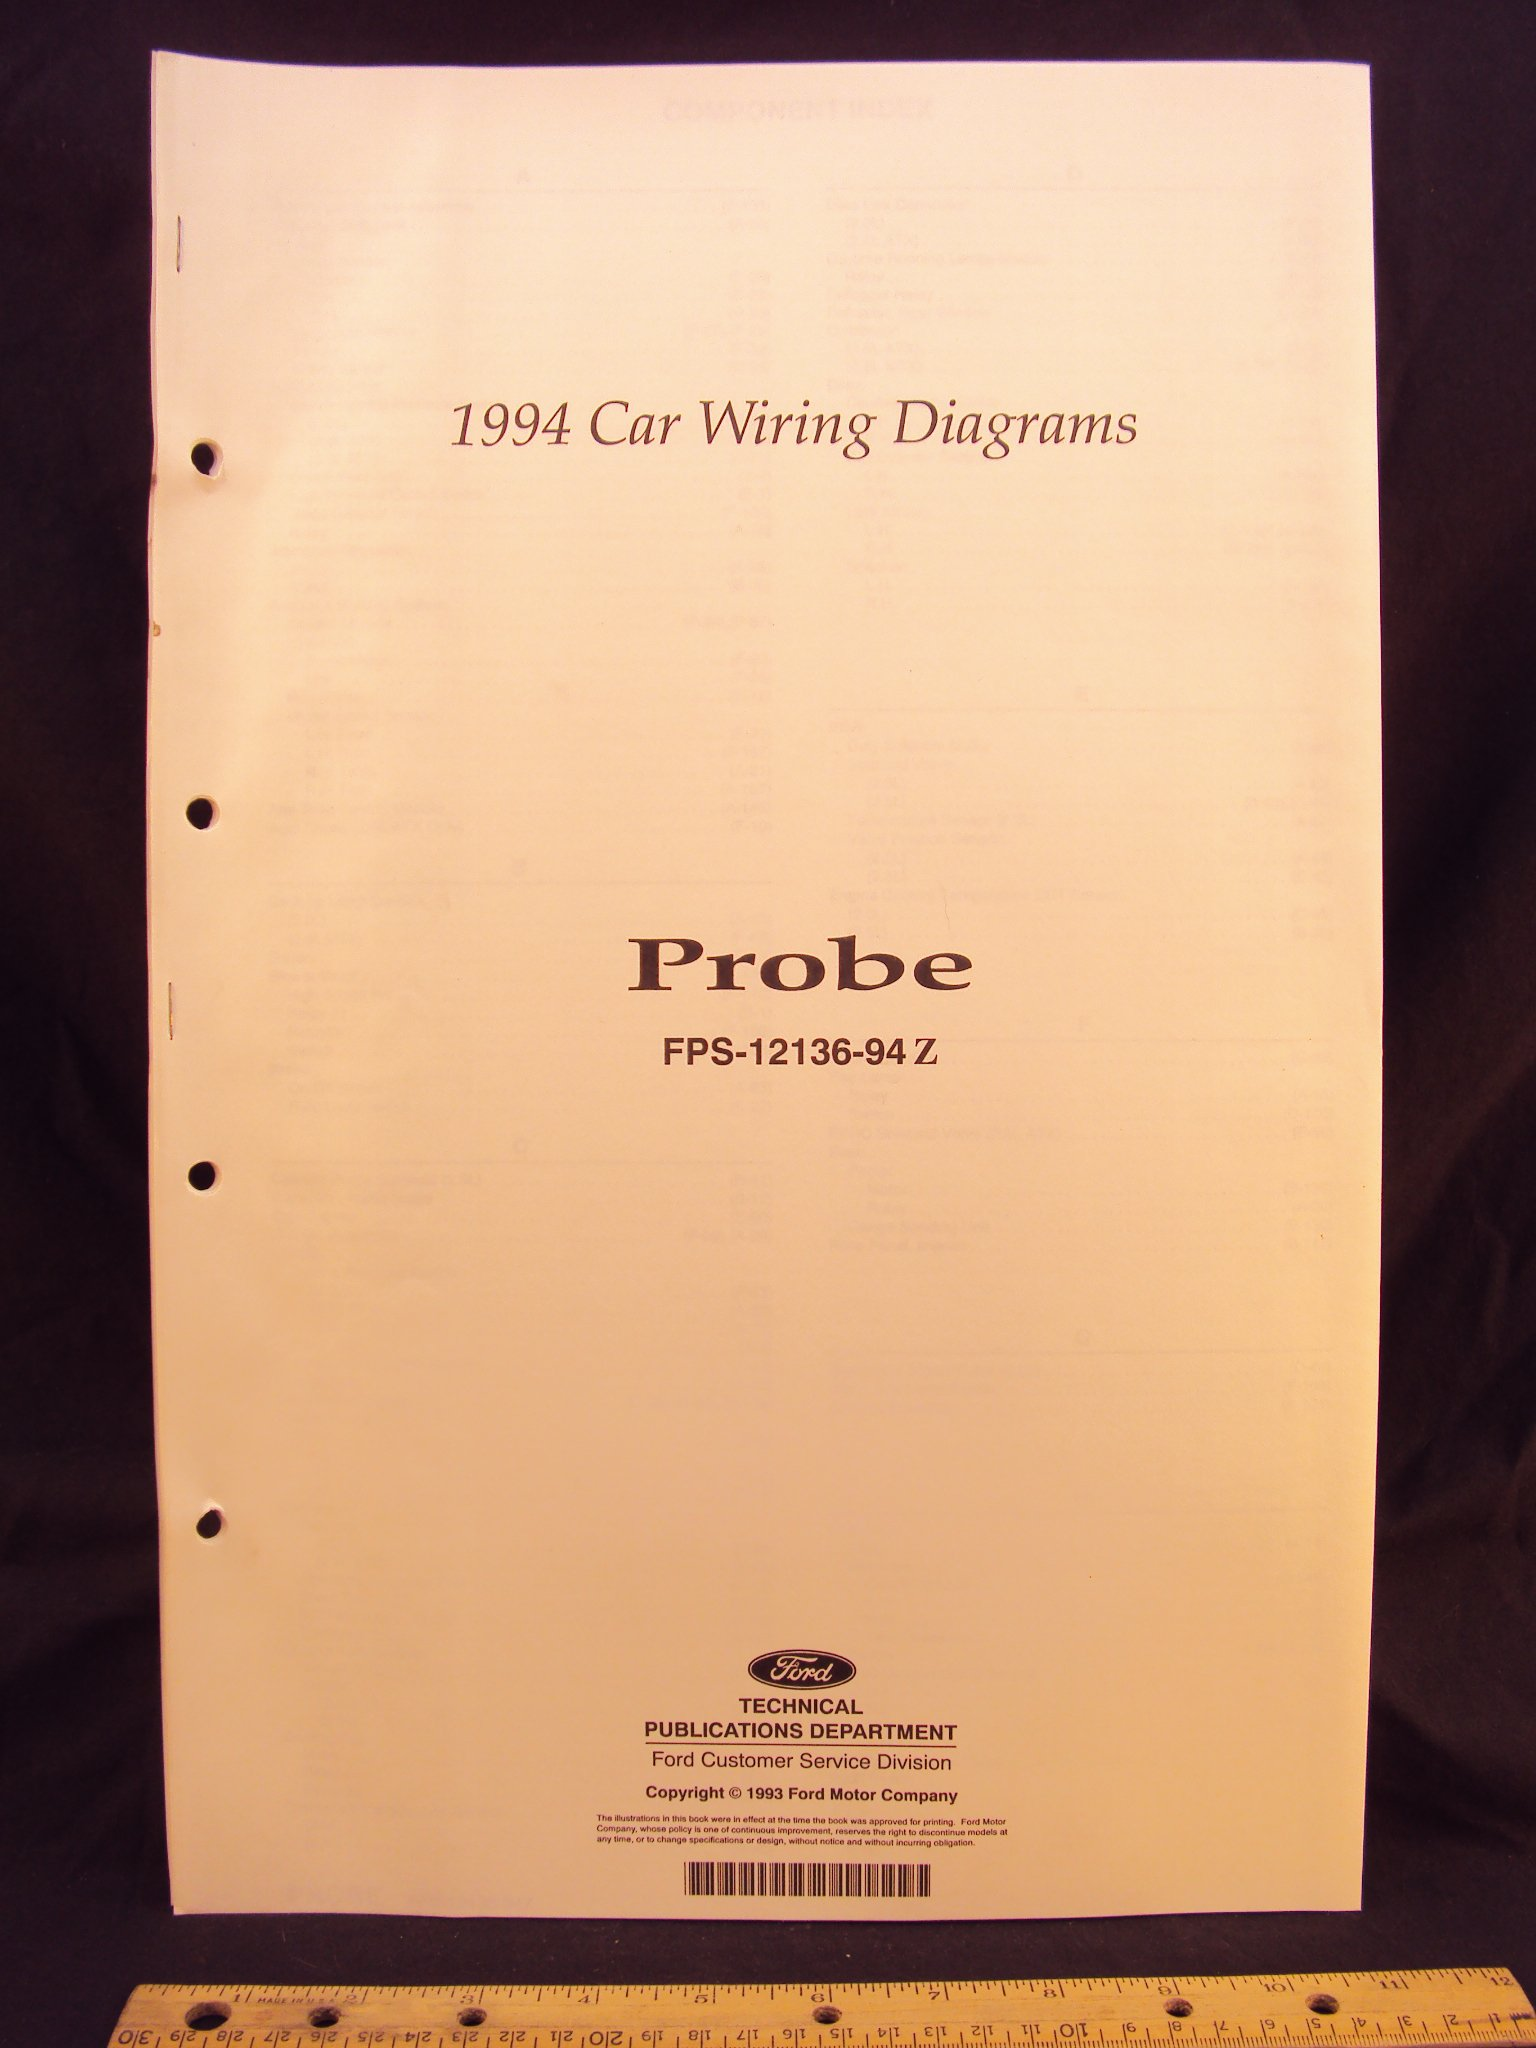 1994 ford probe electrical wiring diagrams / schematics loose leaf –  january 1, 1993